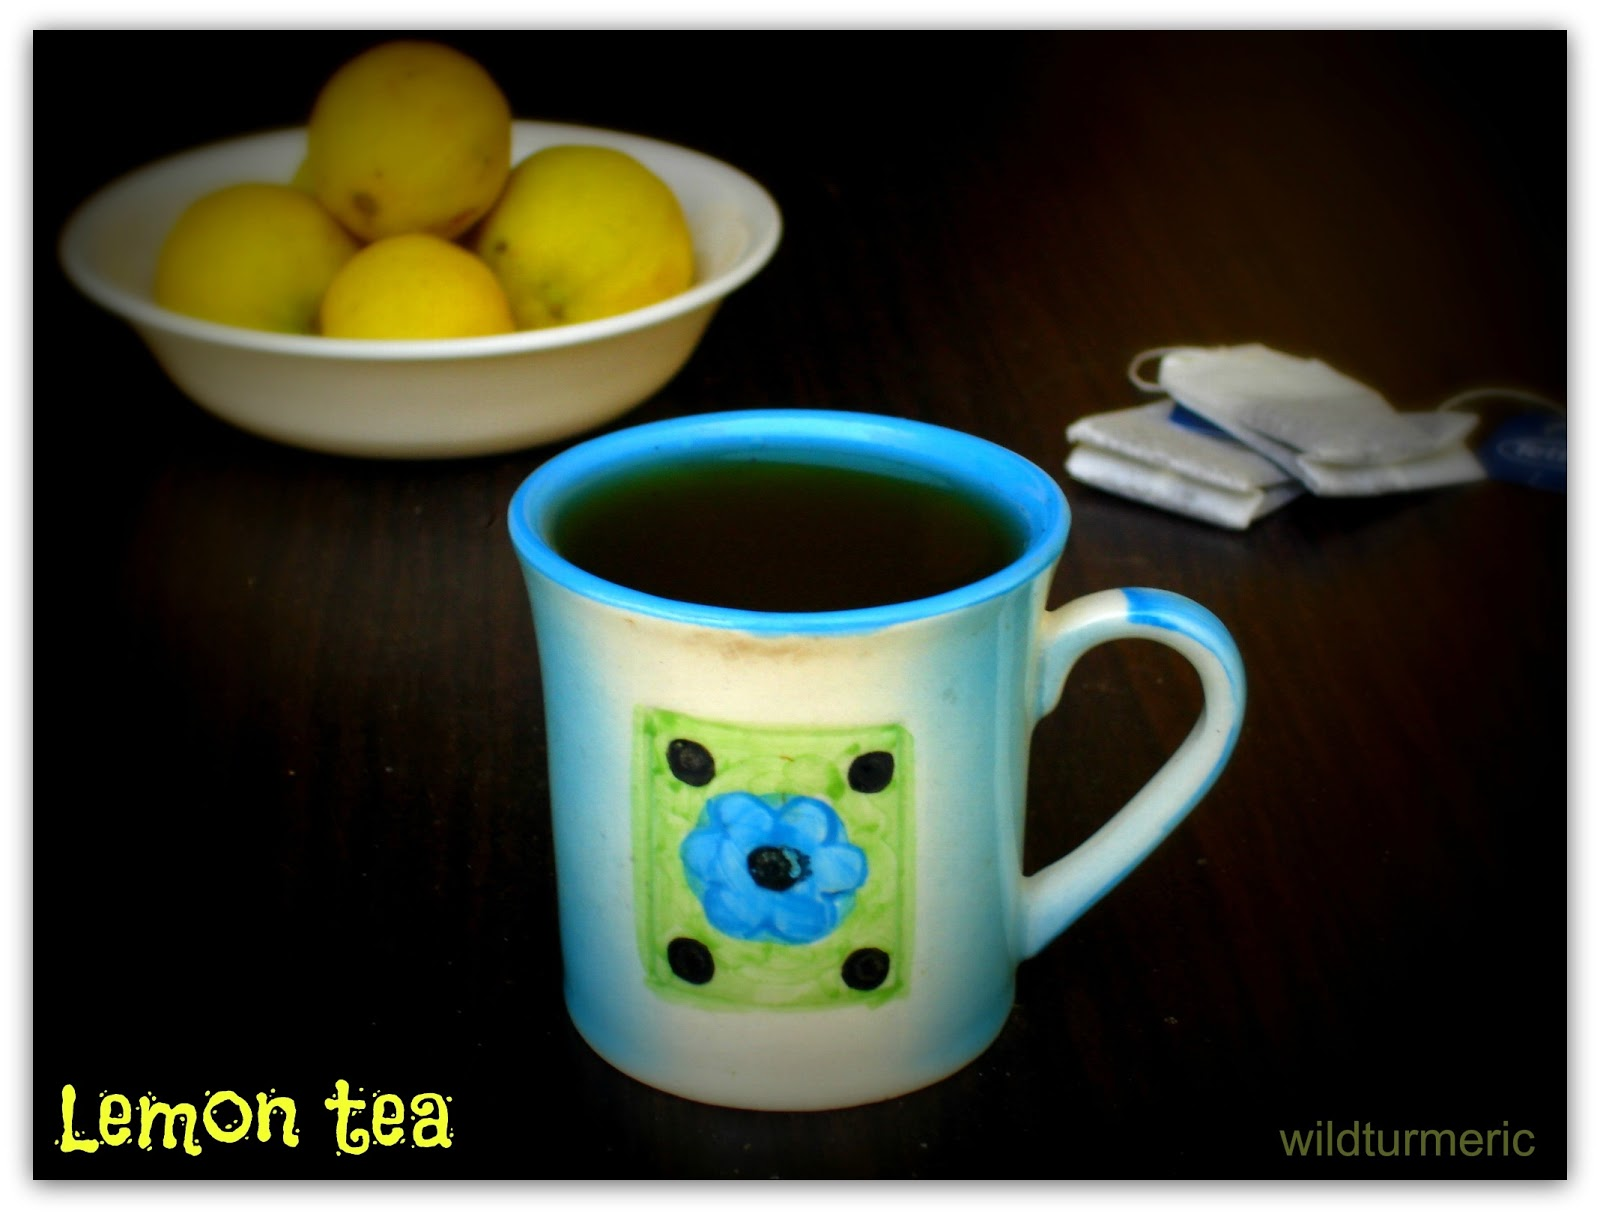 Tea For Diarrhea: Treat Diarrhea With Black Tea | Lemon Tea